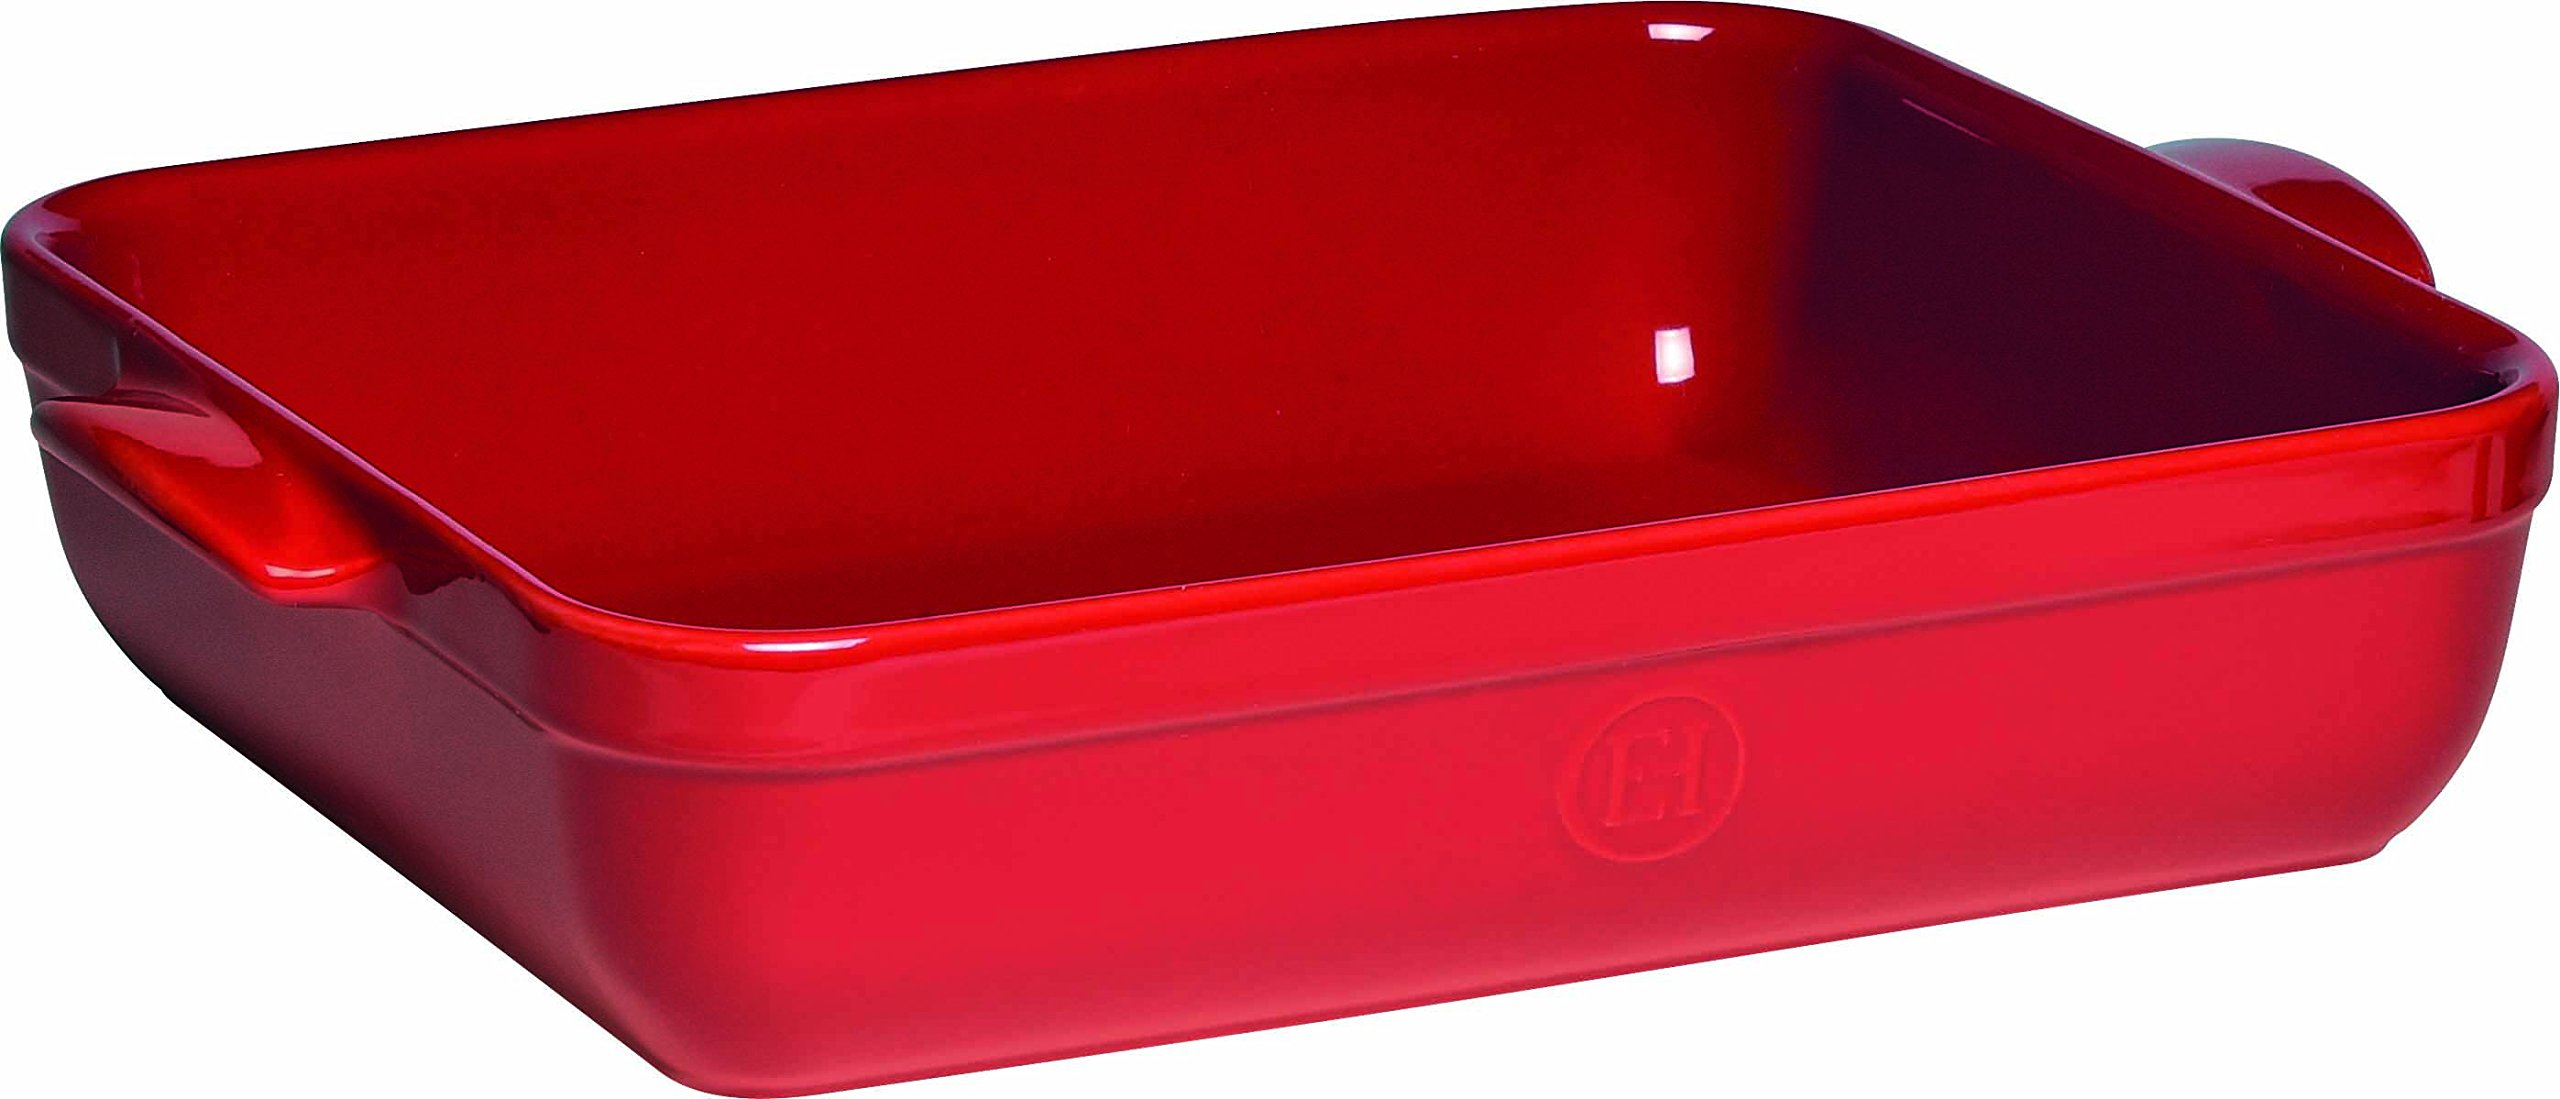 Emile Henry Made In France Lasagna/Roasting Dish 16.75'' x 11''x 3'' Burgundy Red by Emile Henry